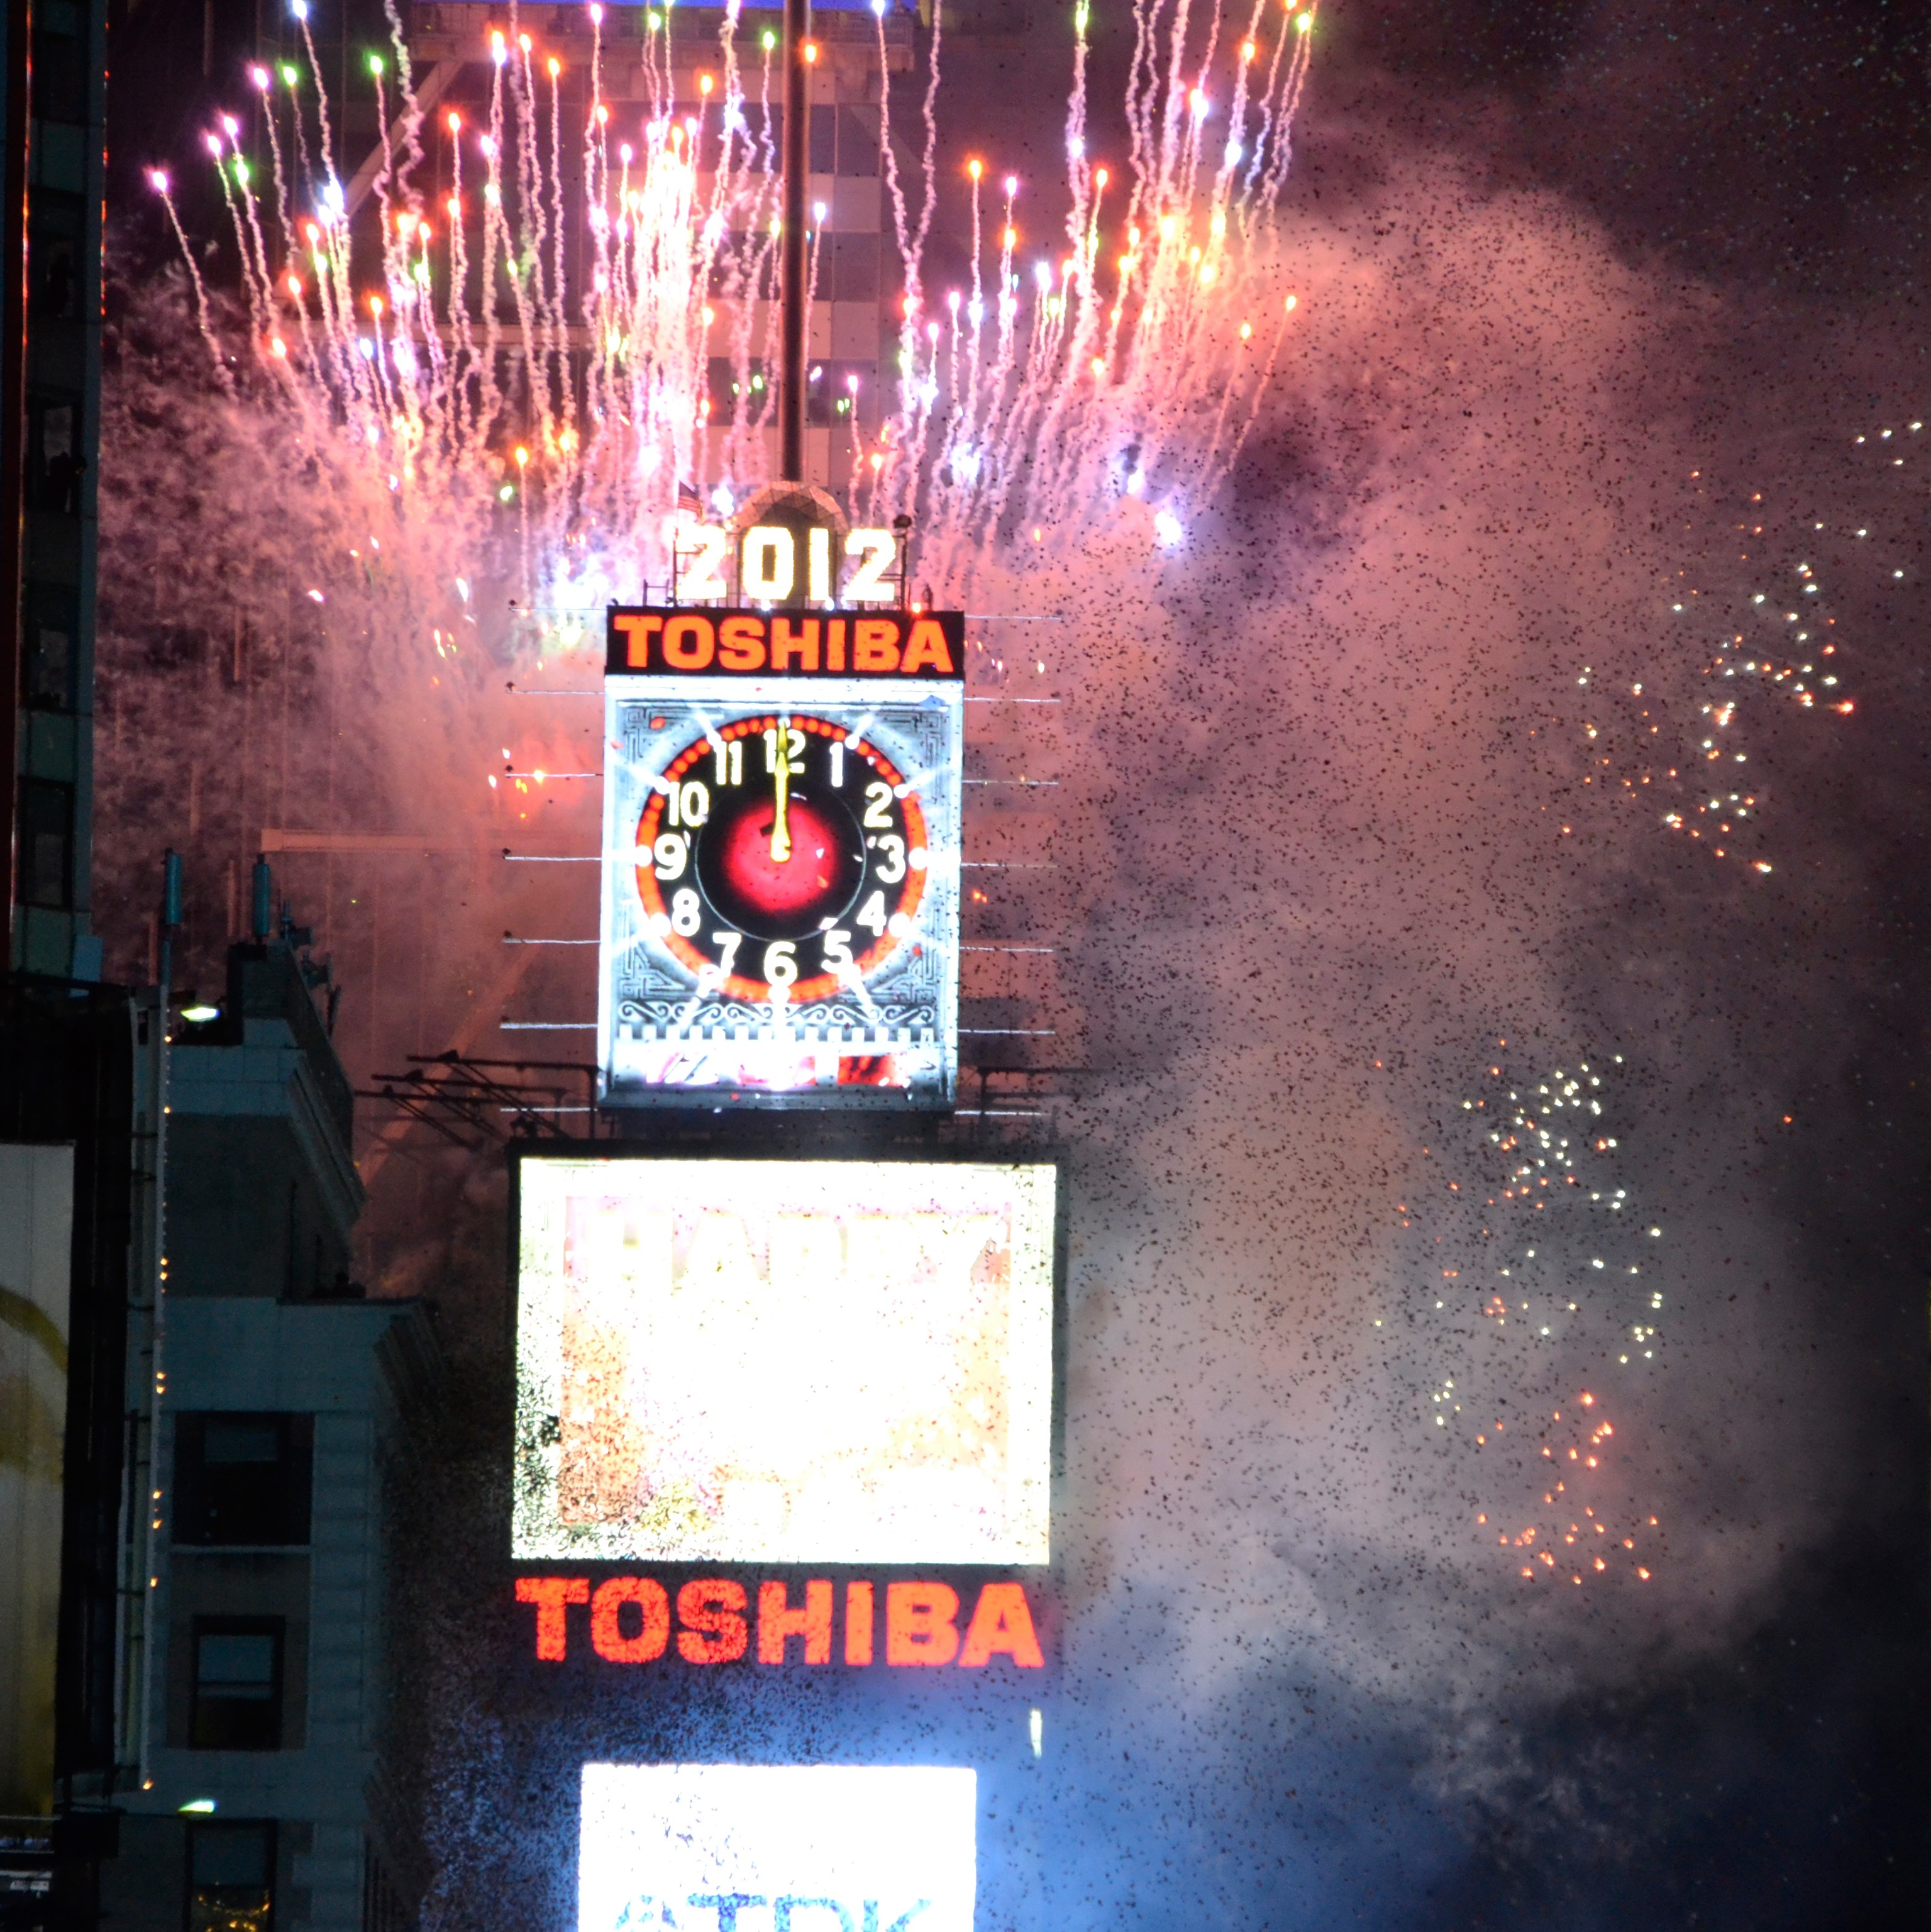 The New Years Eve Ball drop in Times Square from 2012.